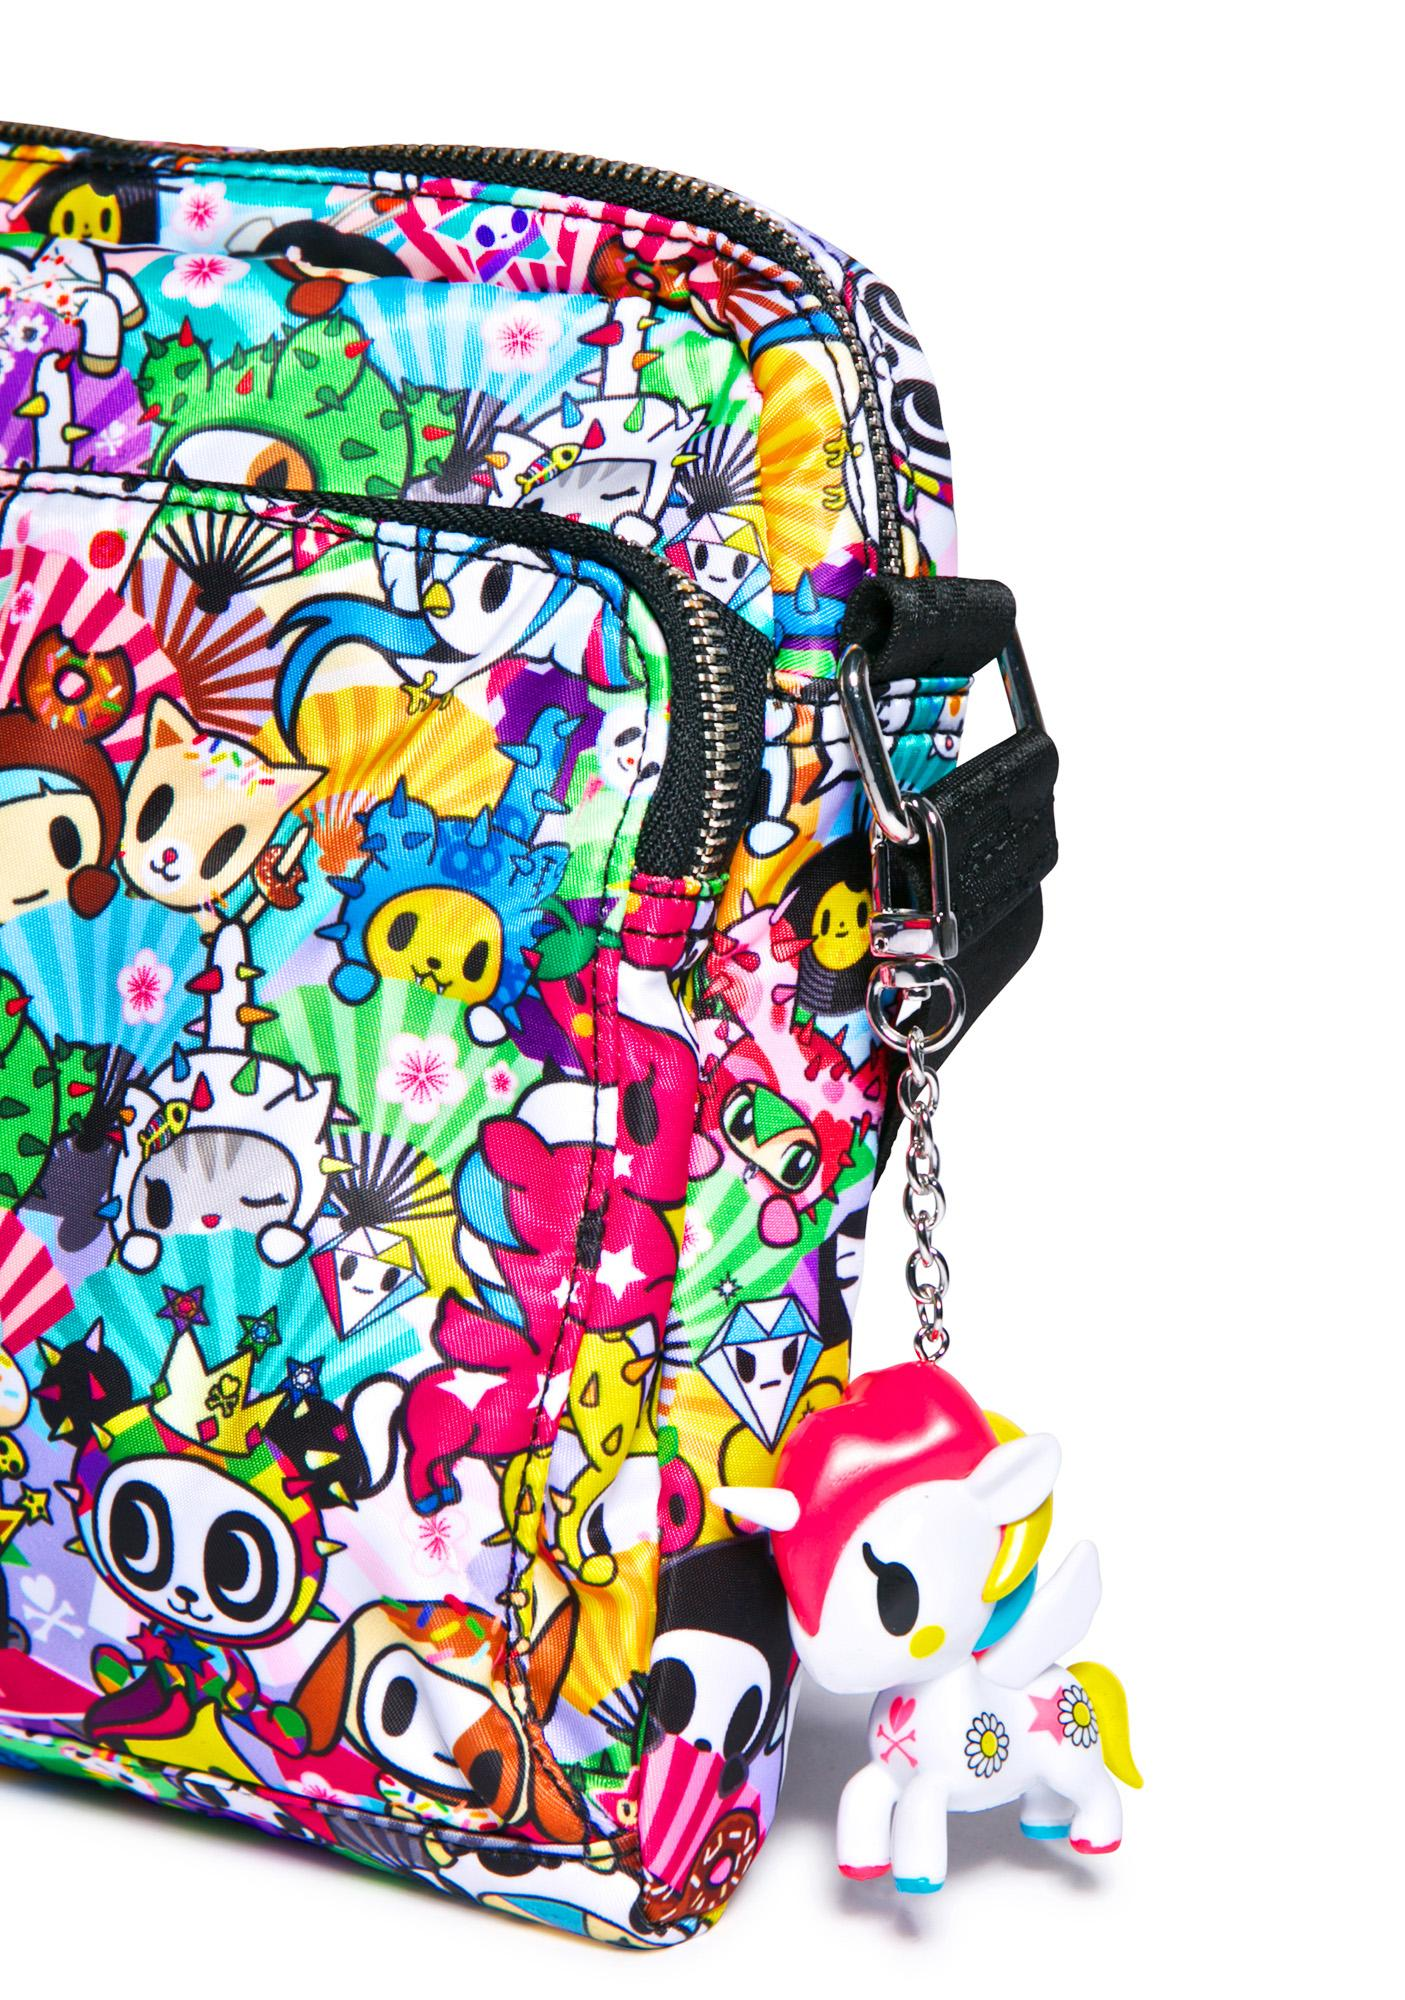 Tokidoki Superfan Crossbody Bag